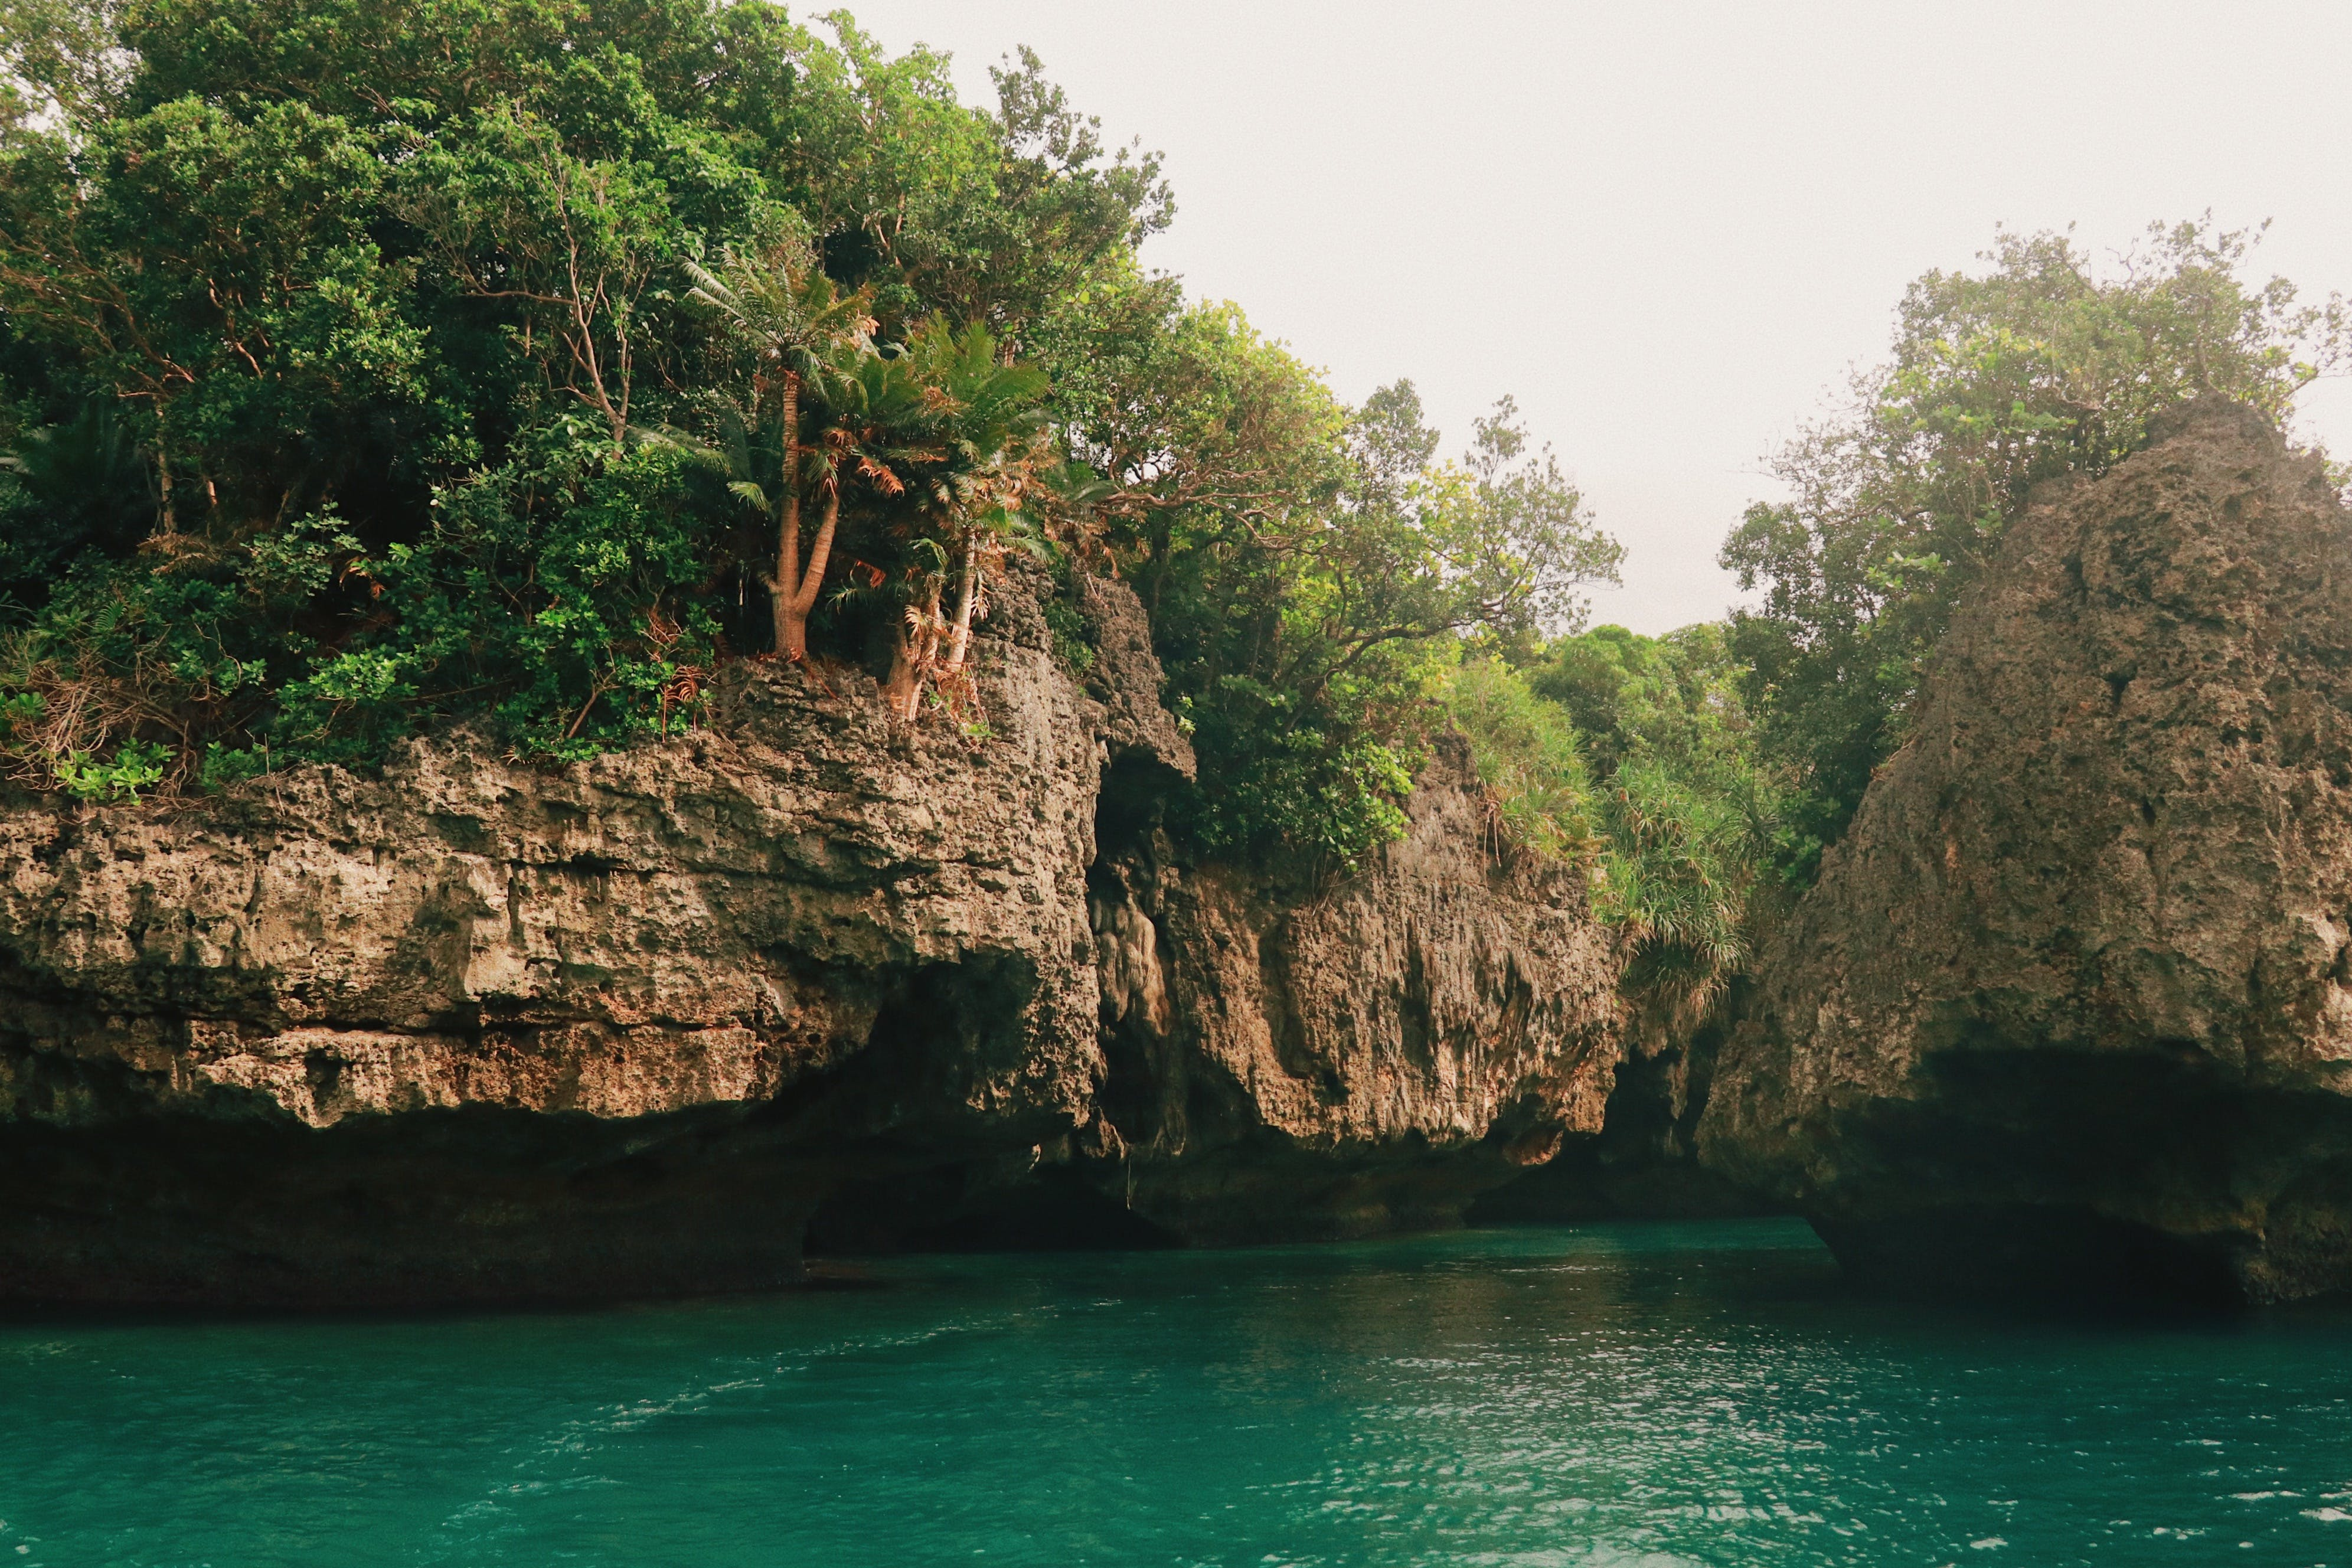 Rocky Cliff and Emerald Green Water View